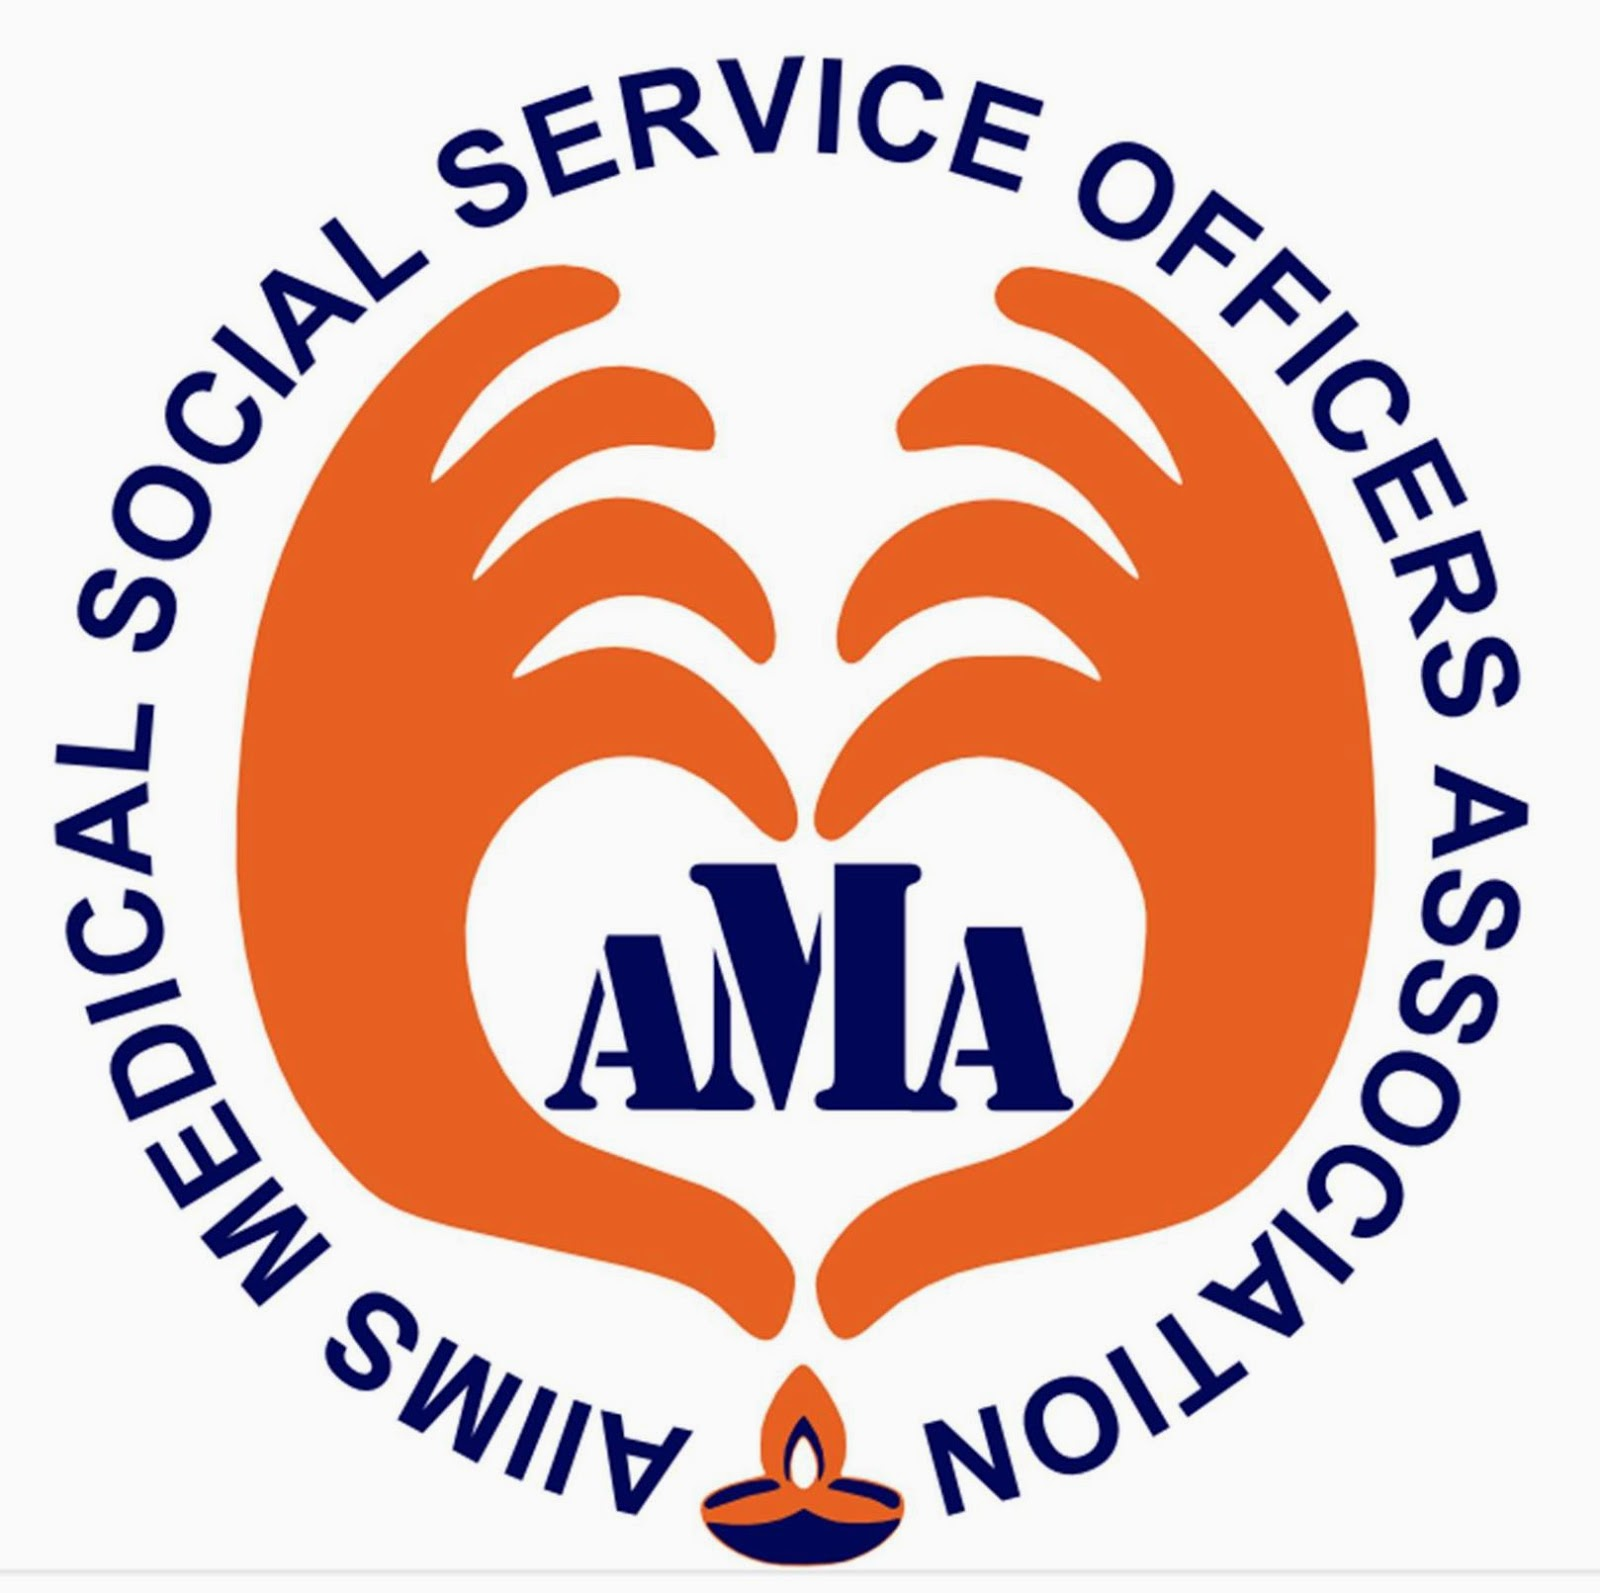 National Seminar On Medical Social Work Practices In Hospital